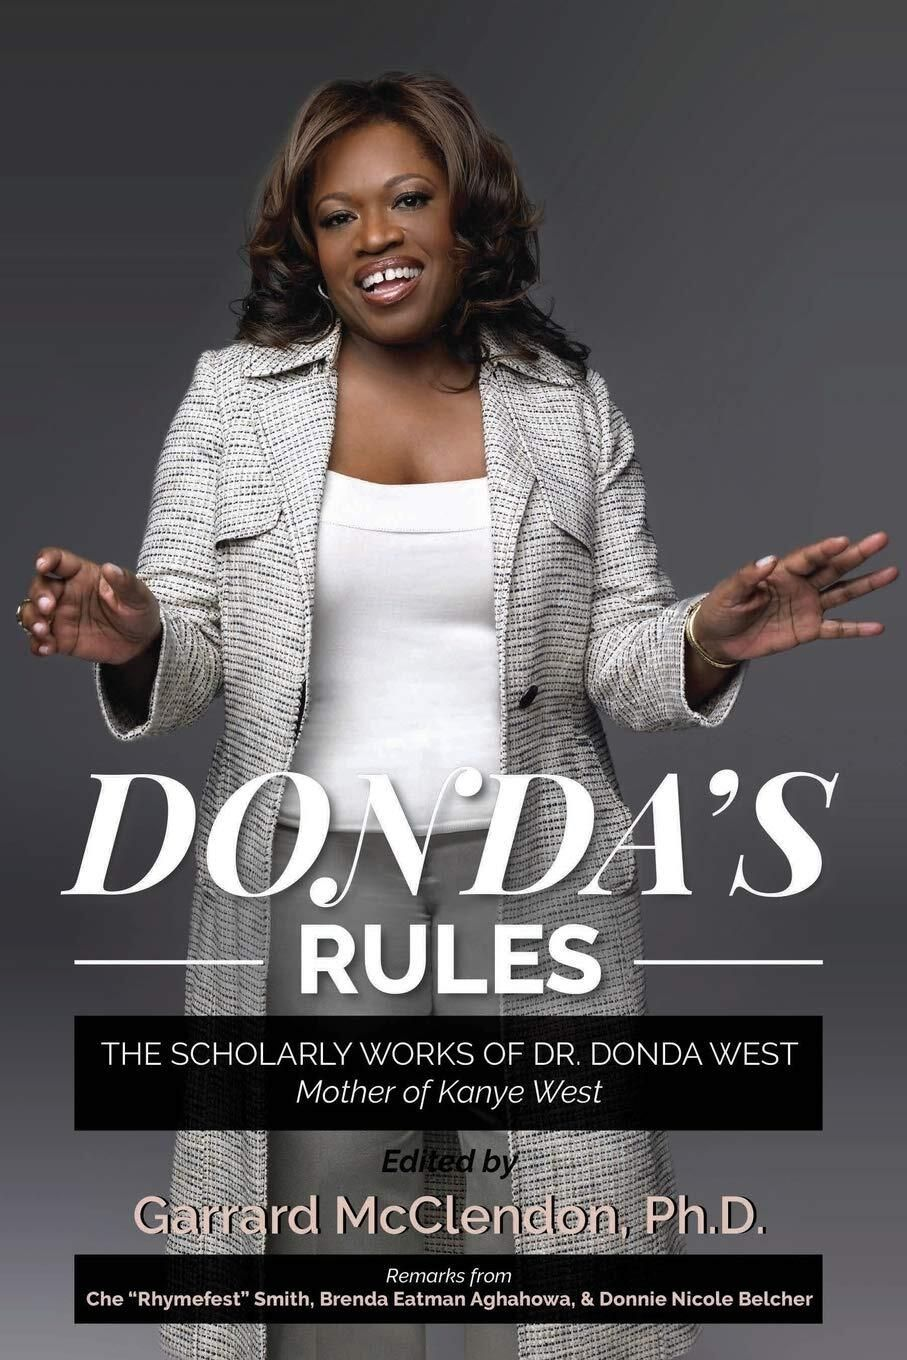 """""""Donda's Rules: The Scholarly Works of Dr. Donda West - Mother of Kanye West,"""" (Duthga Publishing, 2019, $19.95), by Garrard McClendon."""